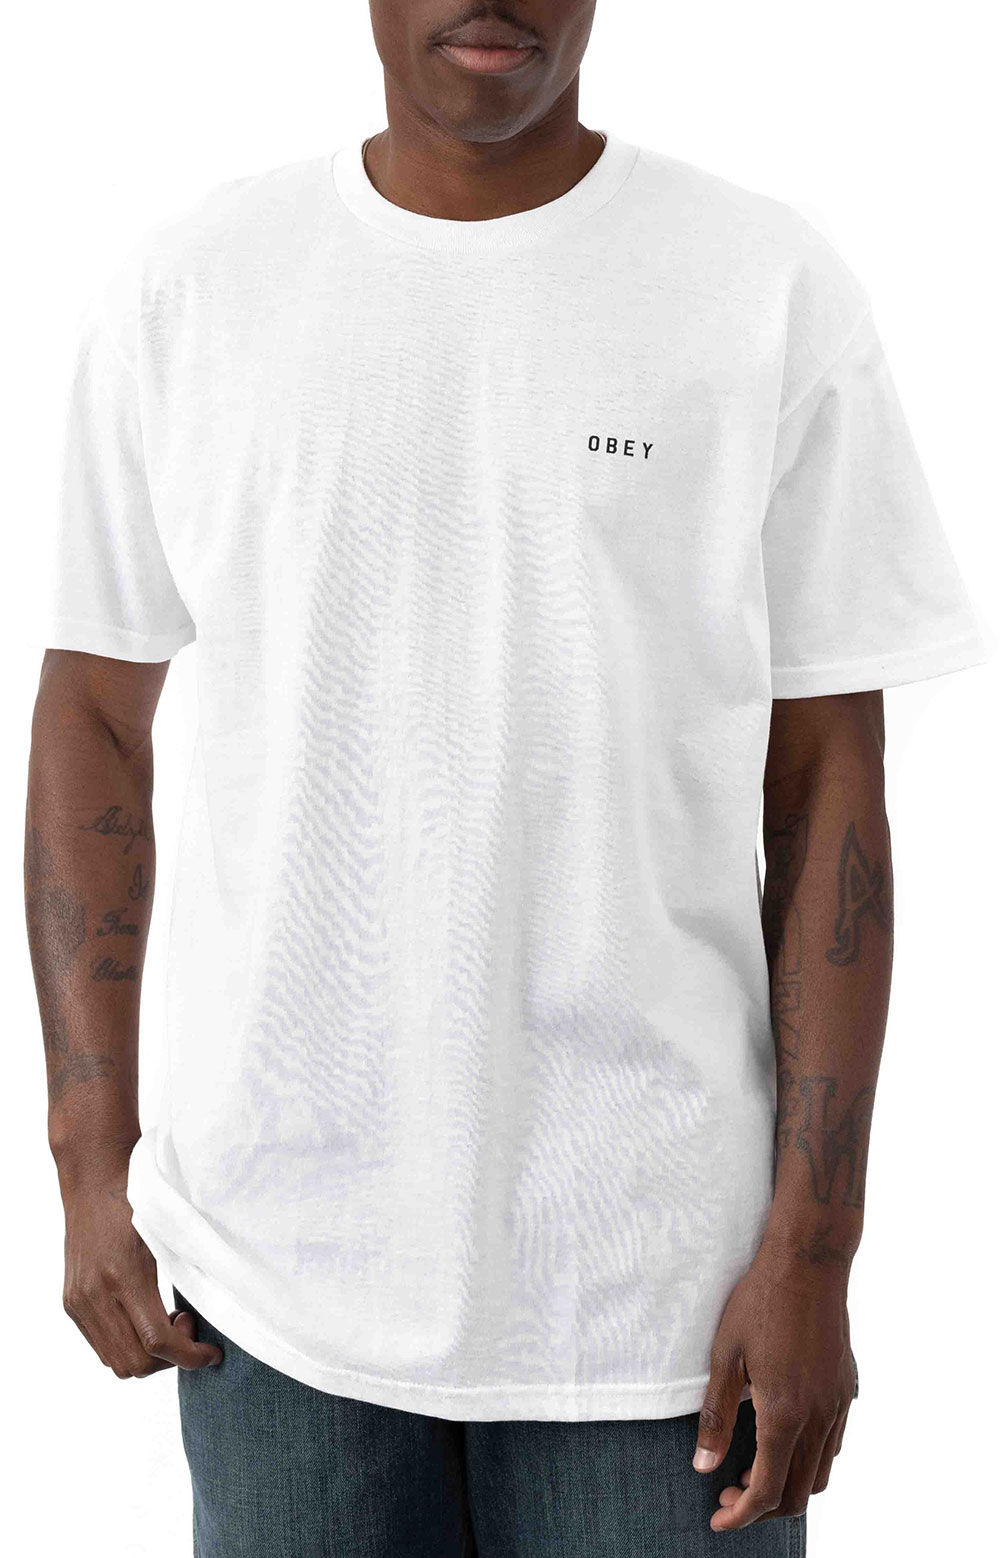 Obey Dissent & Chaos Tiger T-Shirt - White  2